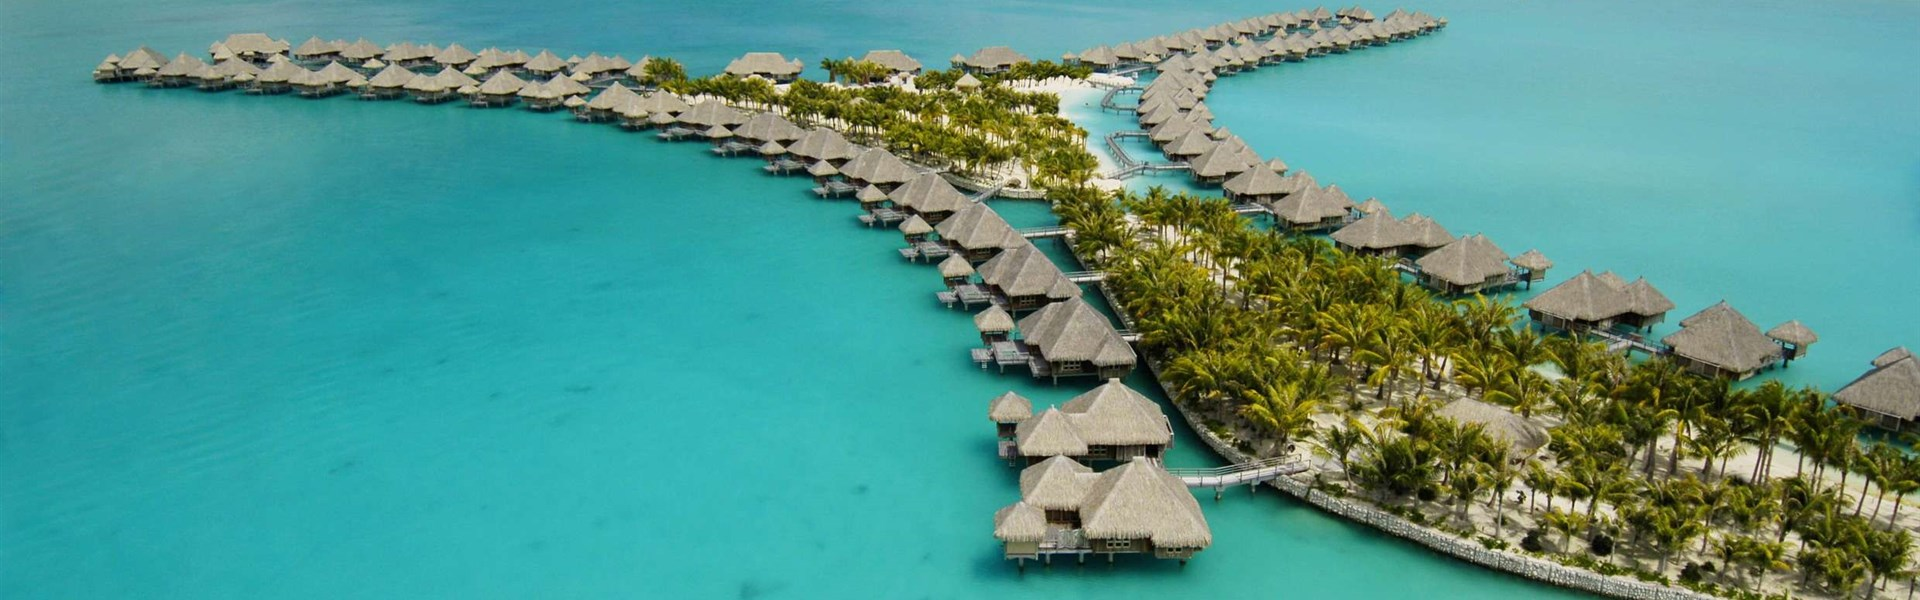 Marco Polo - The St Regis Bora Bora Resort - ostrov Bora Bora -